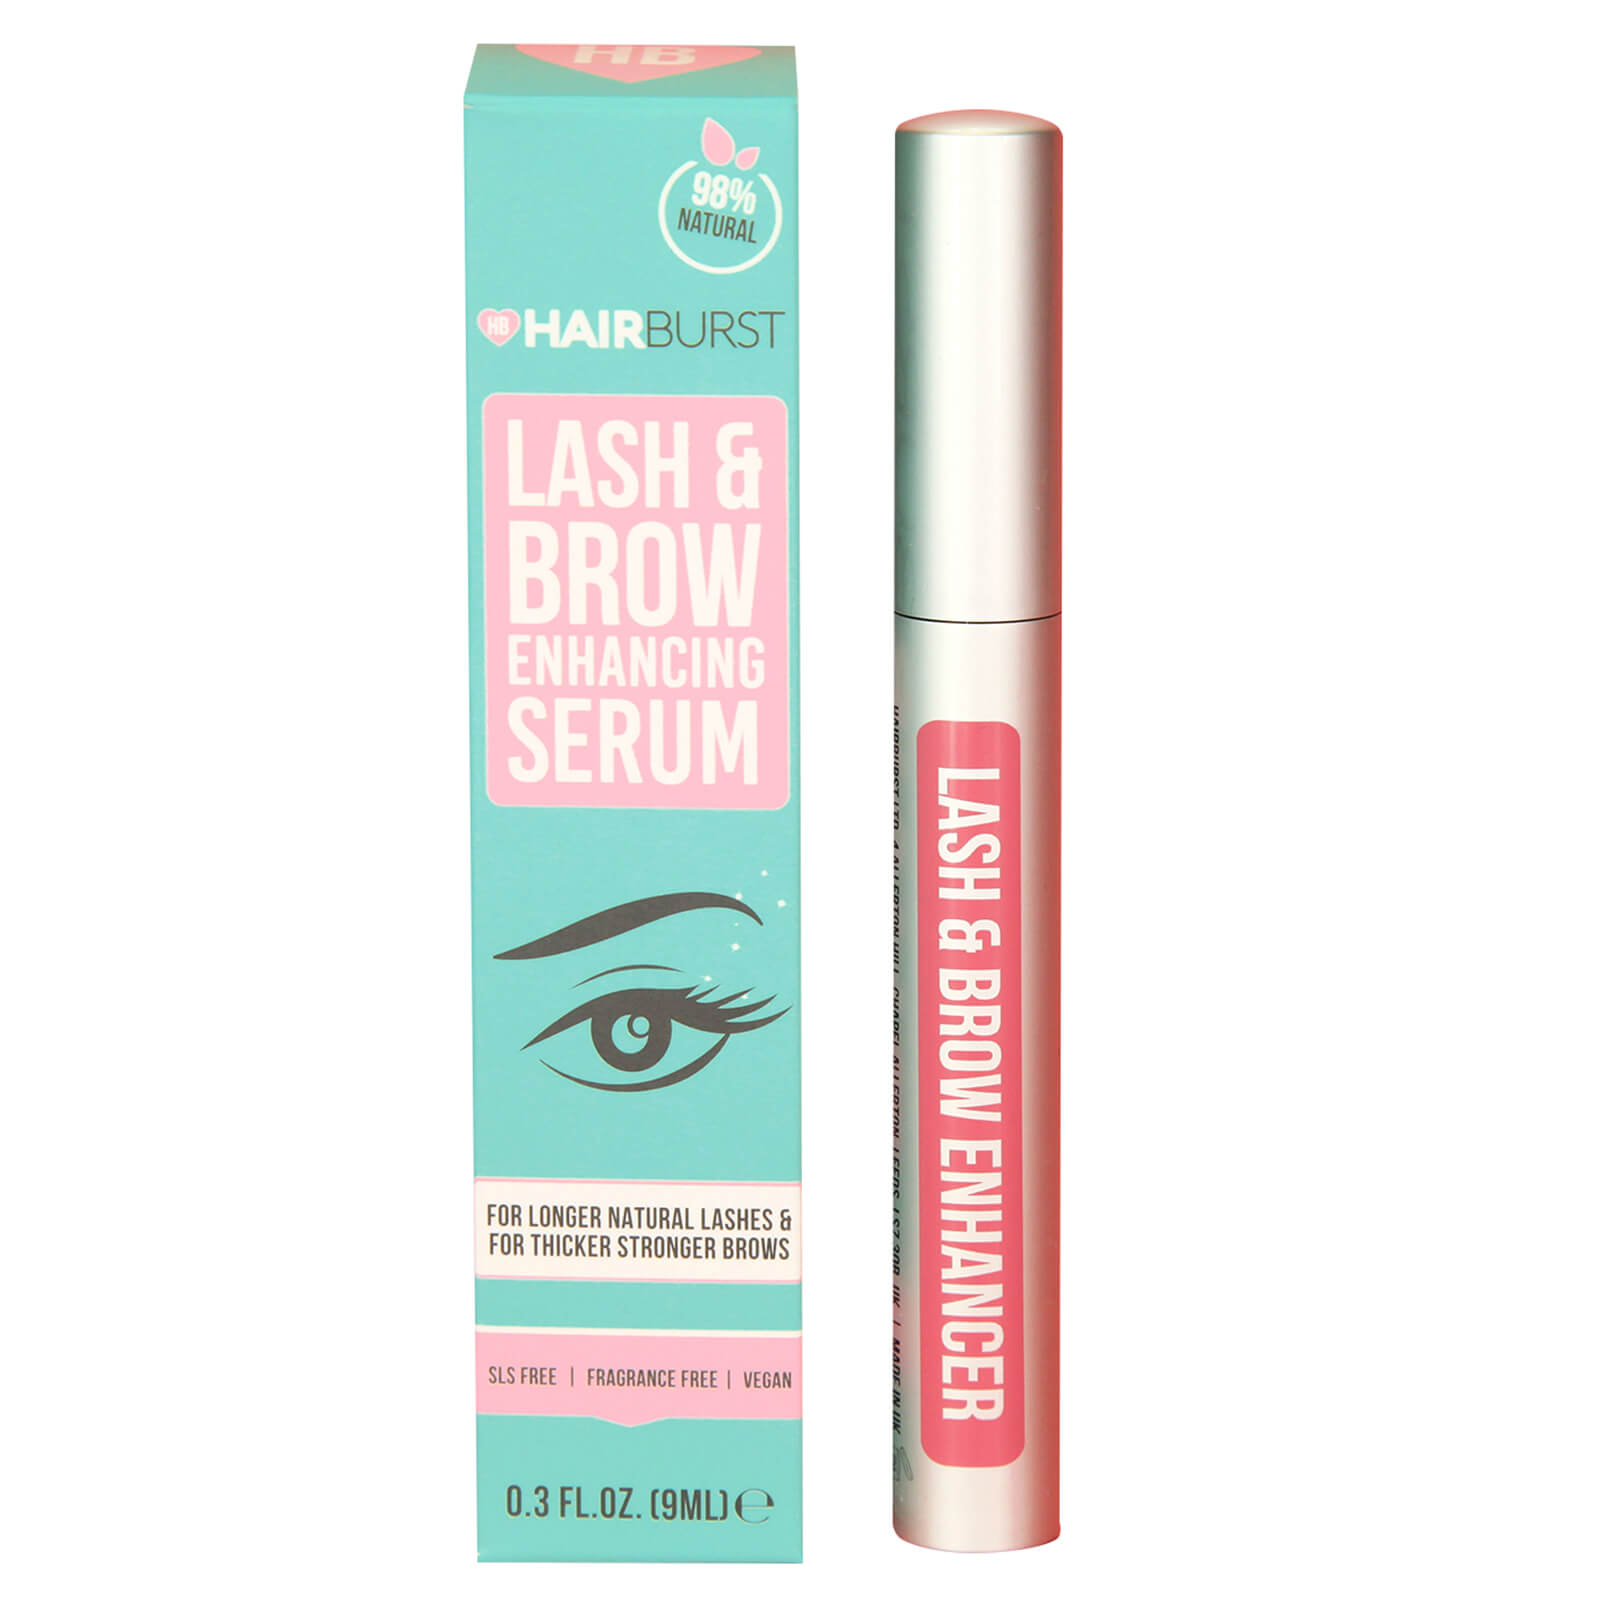 c21e72e14d9 Hairburst Lash and Brow Serum | Free Shipping | Lookfantastic